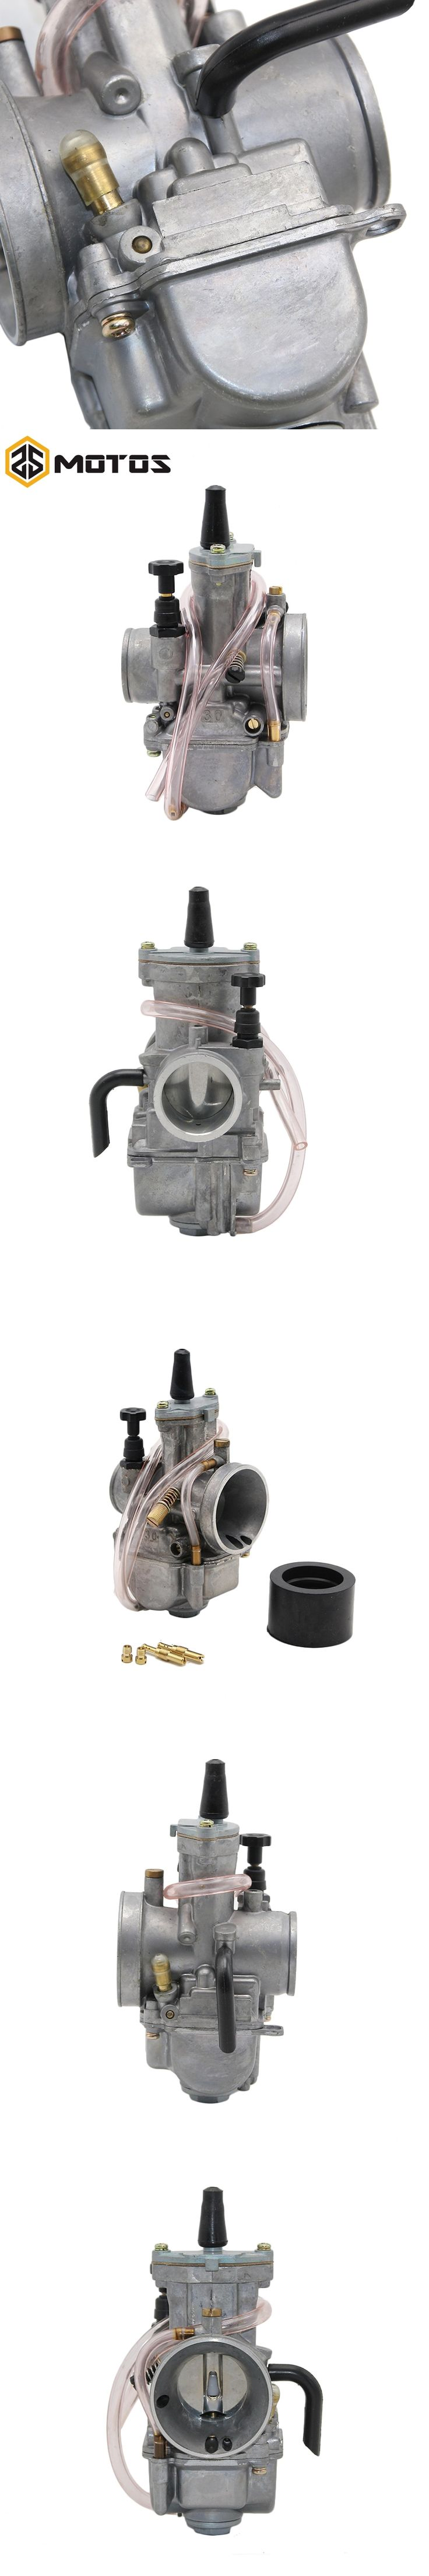 Super Performance PWK Carburetor CARB Motorcycle RACING PARTS Scooters Dirt Bike ATV 28 30 32 34mm with Power Jet